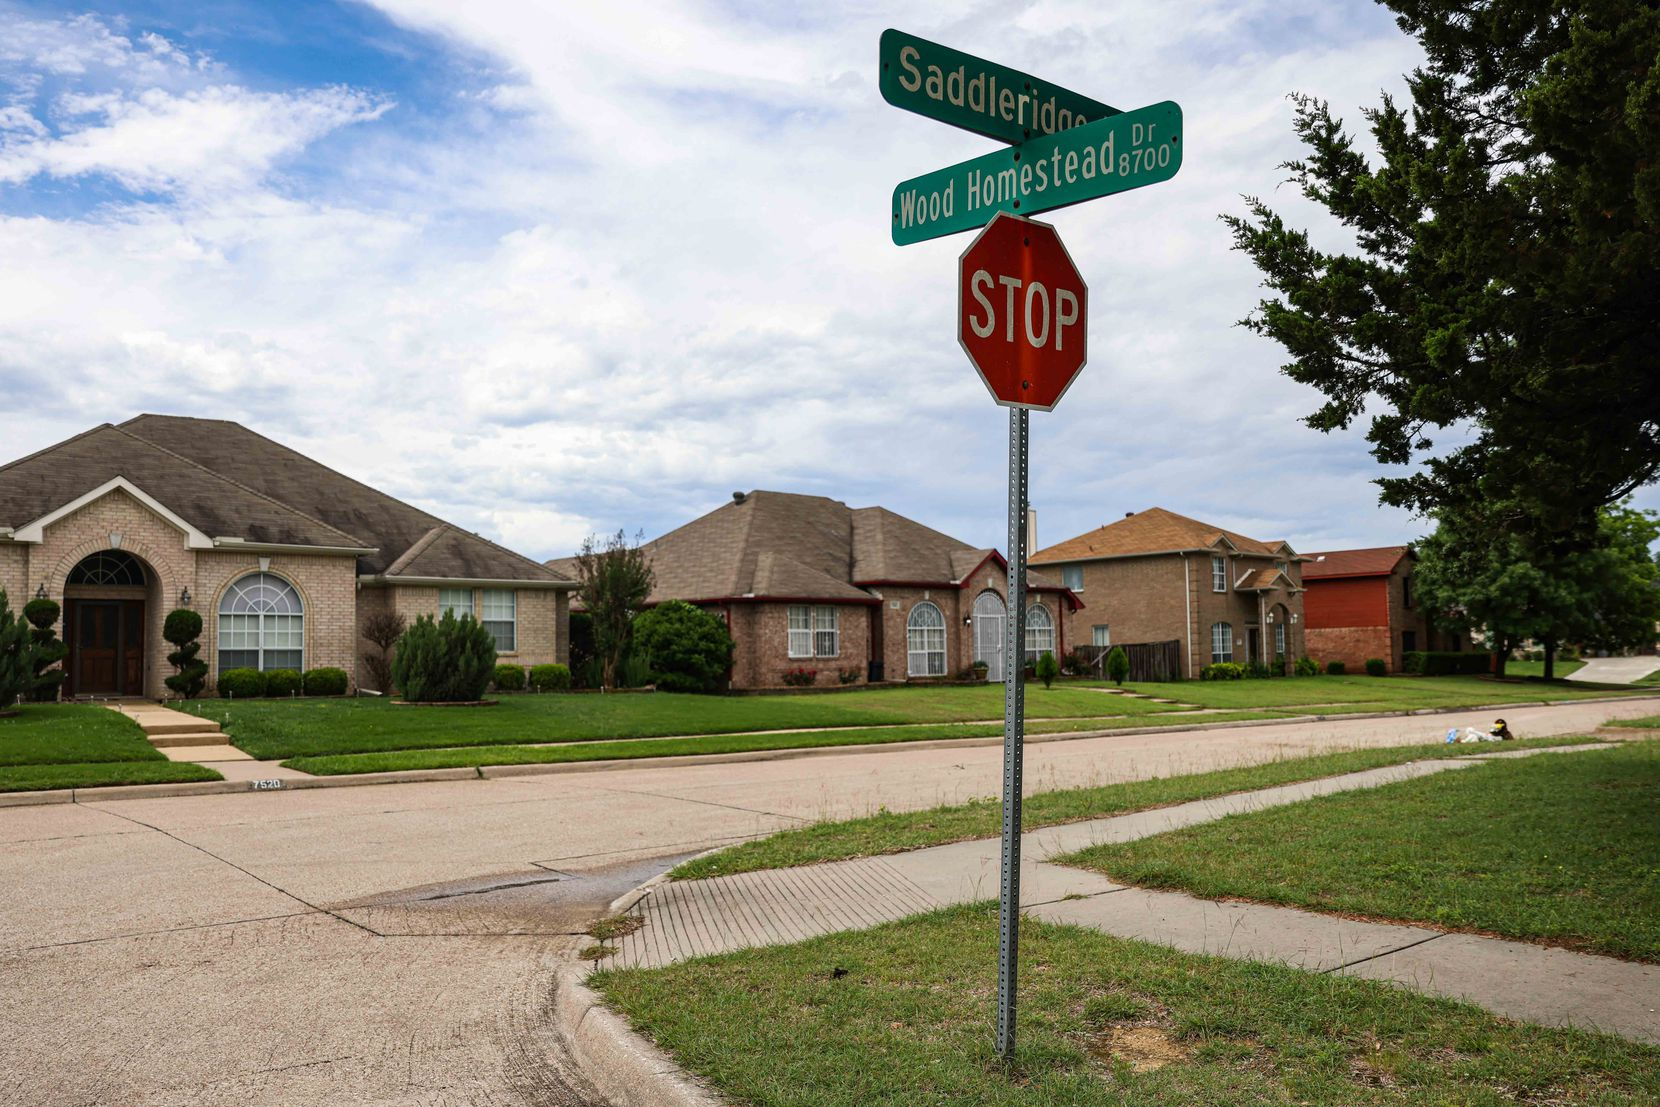 The street where the dead body of a 4-year-old boy was found last Saturday morning in Dallas on Monday, May 17, 2021.